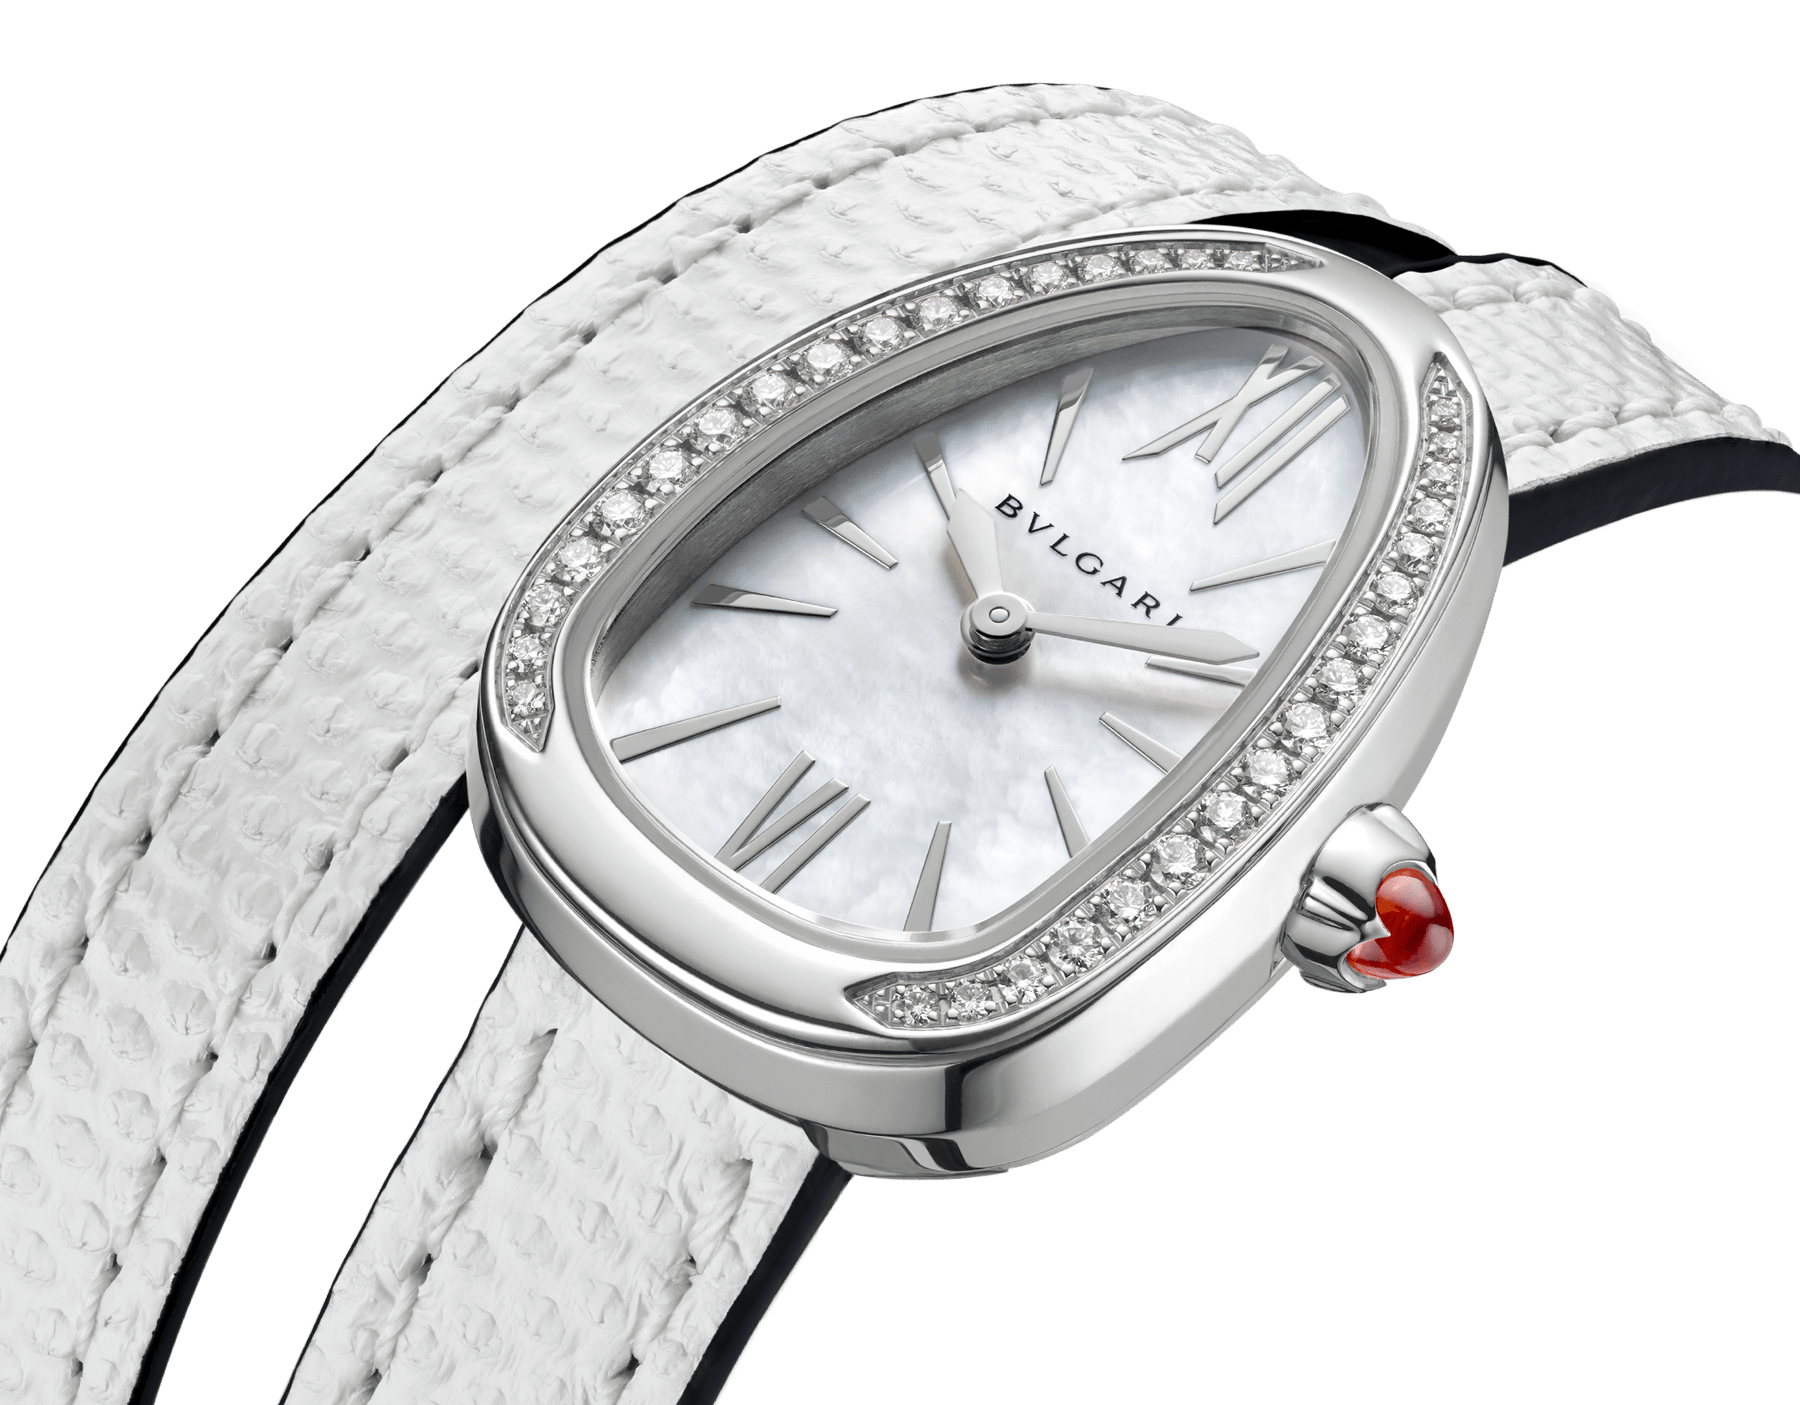 Serpenti watch with stainless steel case set with diamonds, white mother-of-pearl dial and interchangeable double spiral bracelet in white karung leather. 102781 image 3